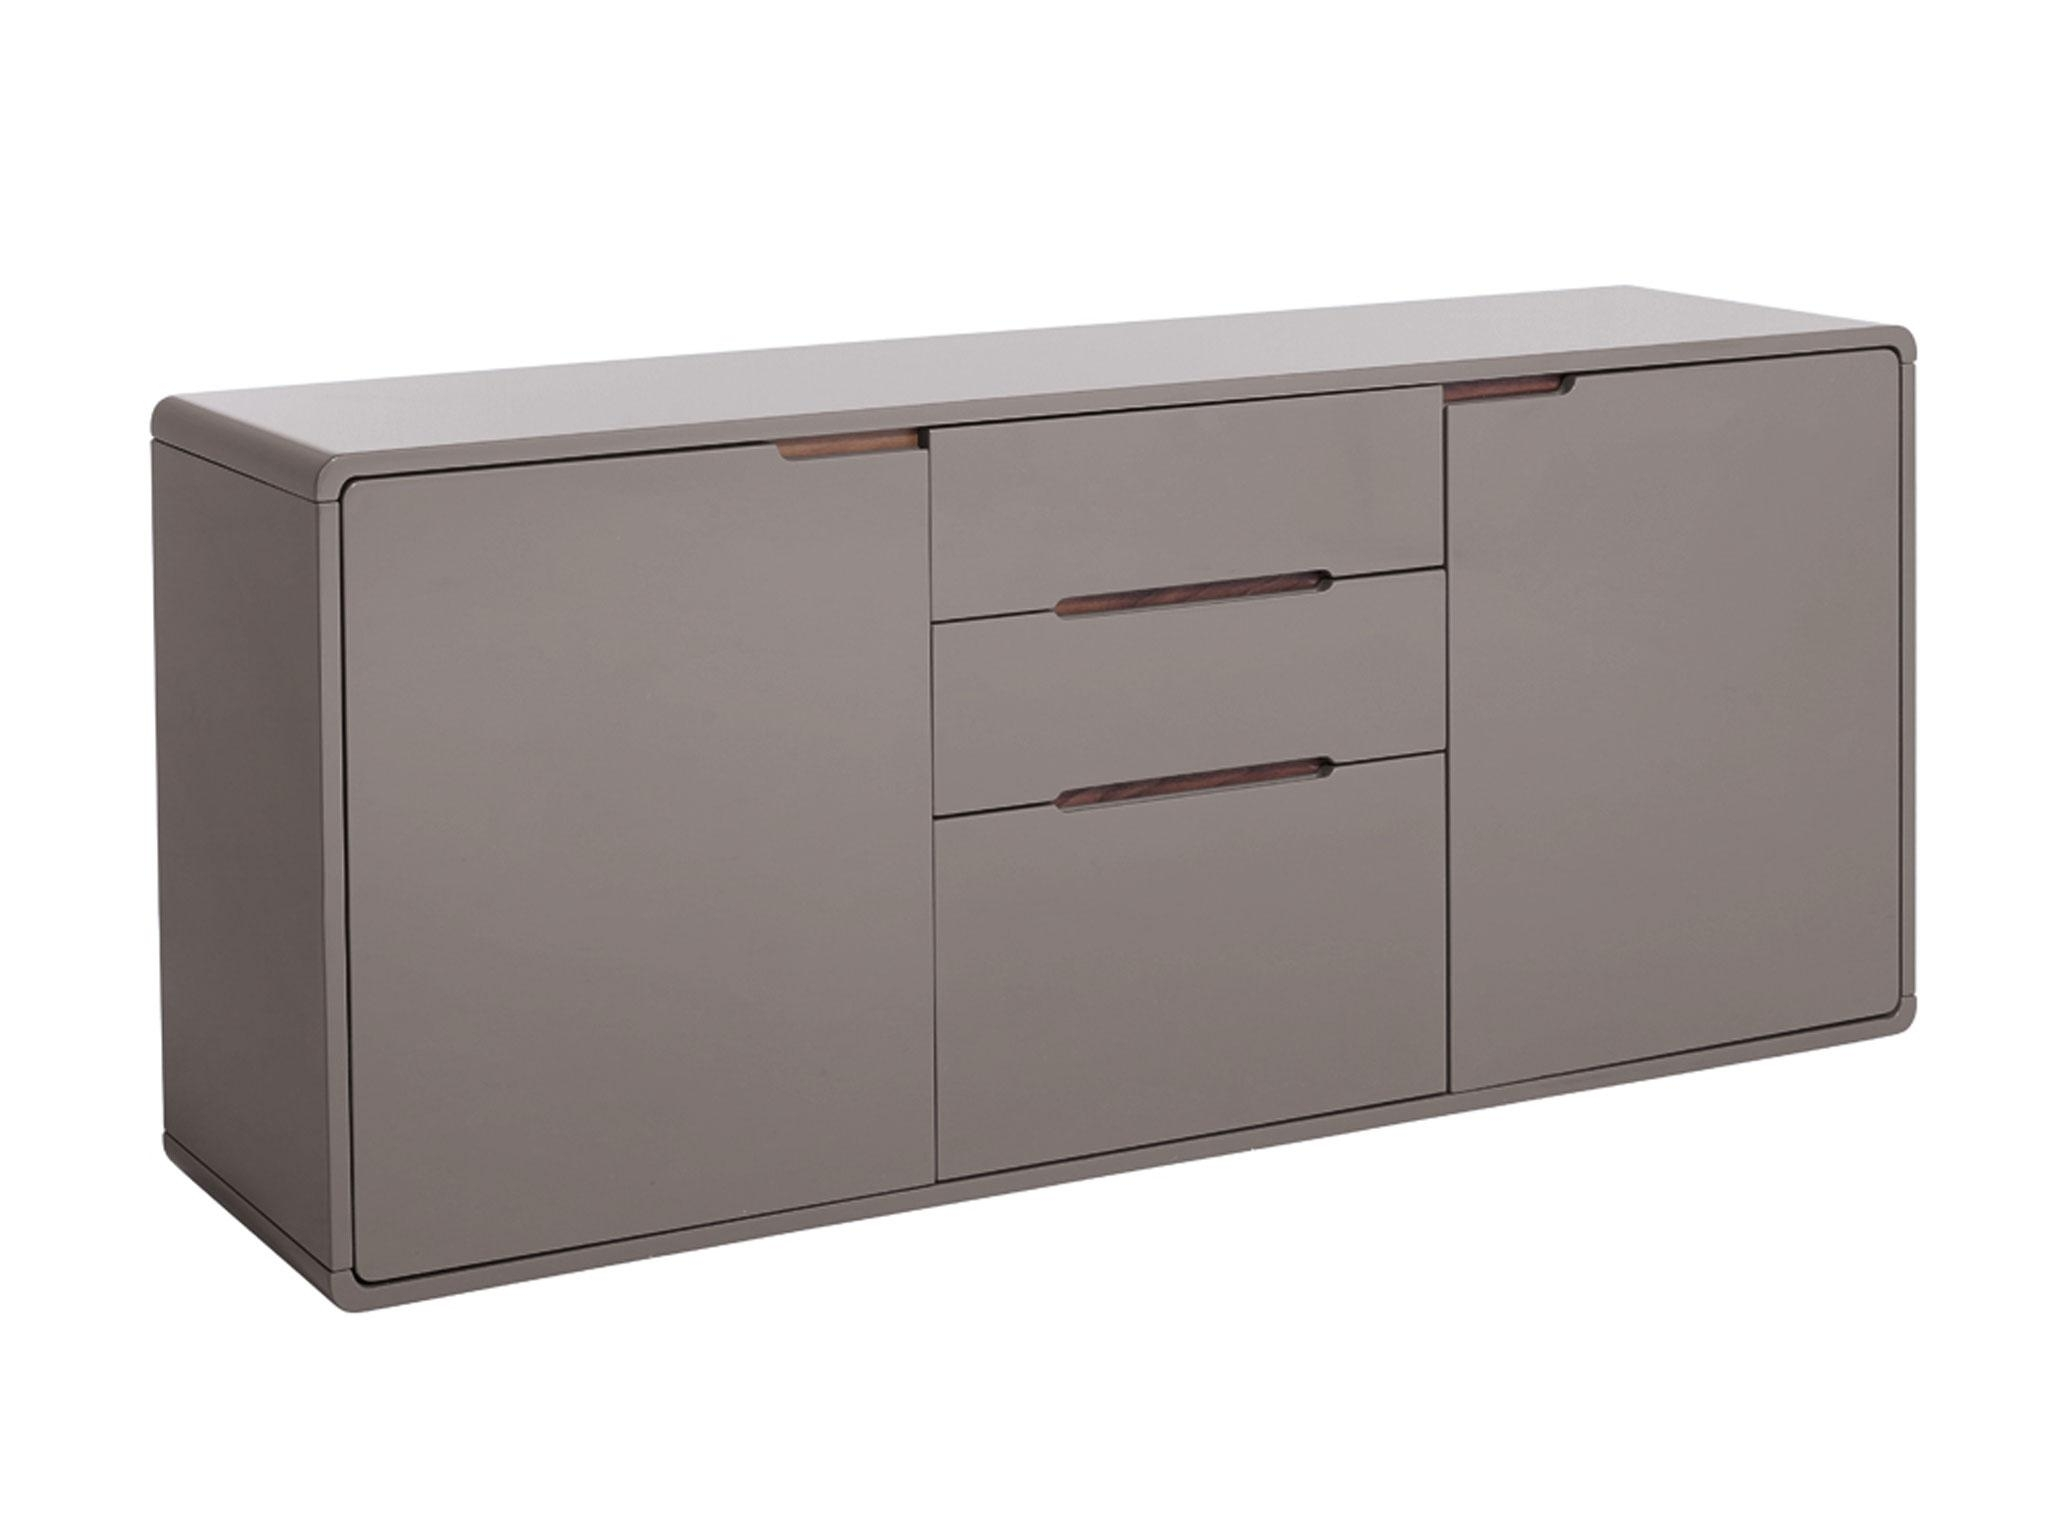 10 Best Sideboards | The Independent with Metal Refinement 4 Door Sideboards (Image 2 of 30)